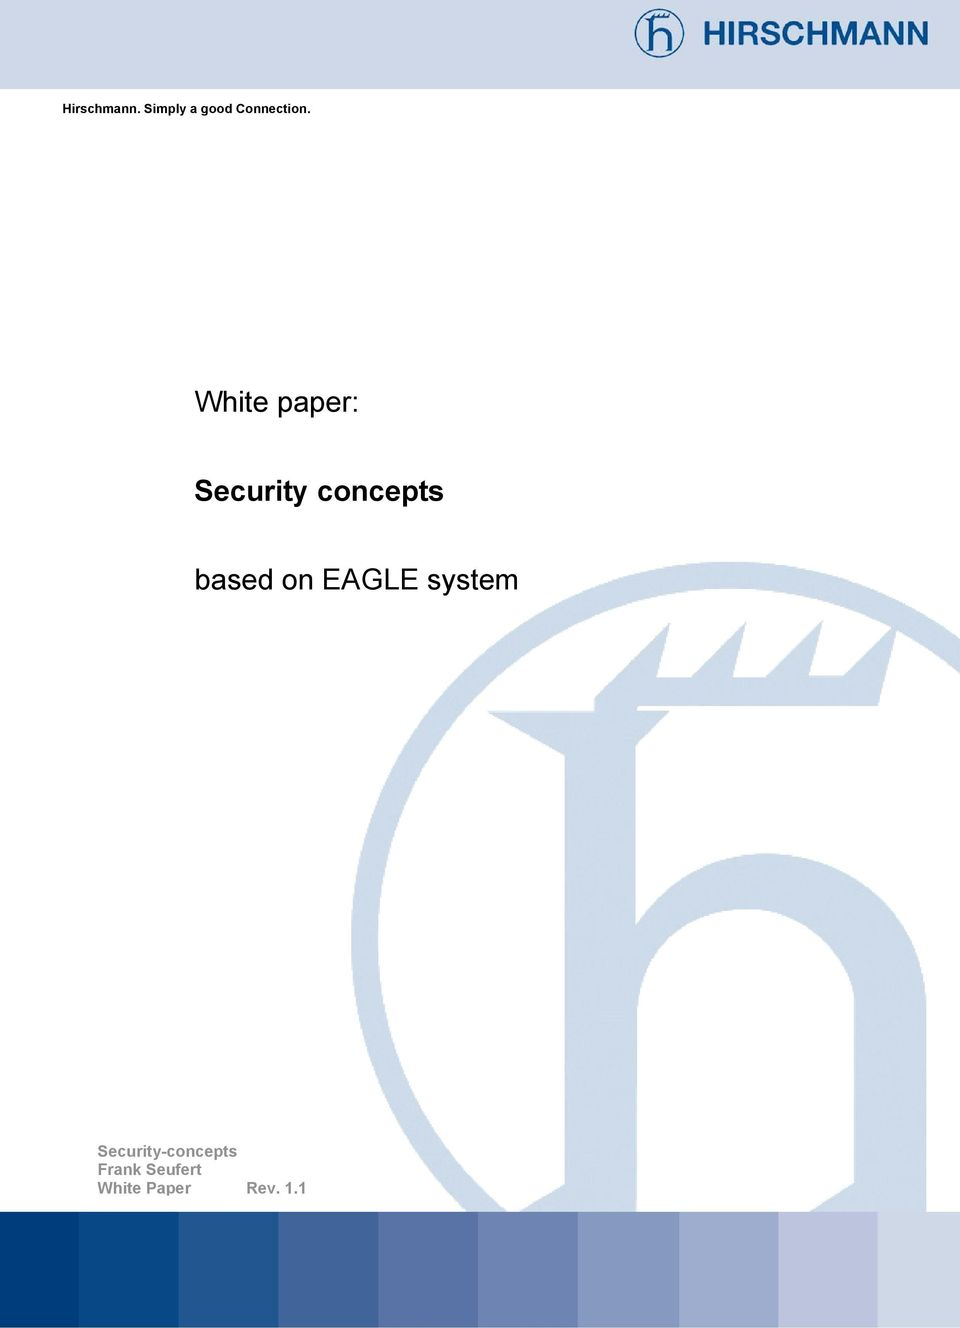 White paper: Security concepts